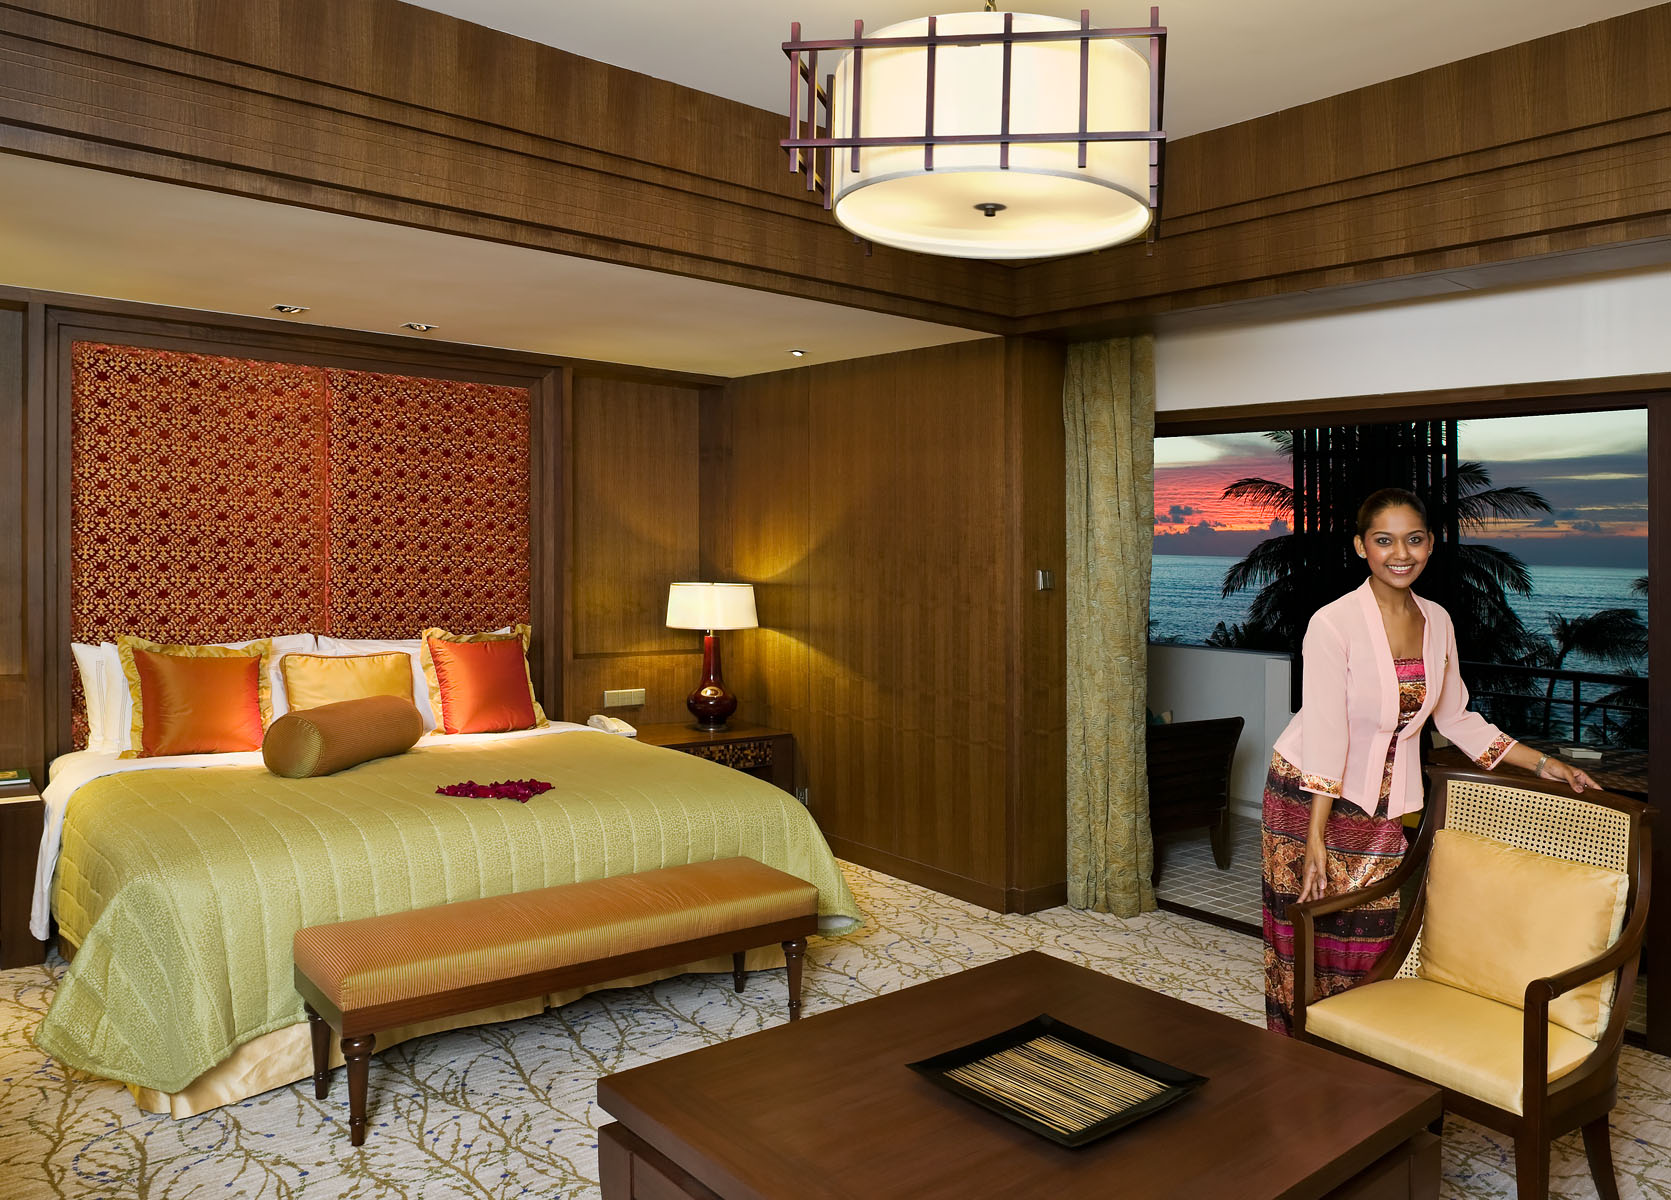 Bedroom of Presidential Suite in Luxury Hotel and Spa on island of PenangClient: Shangri-La